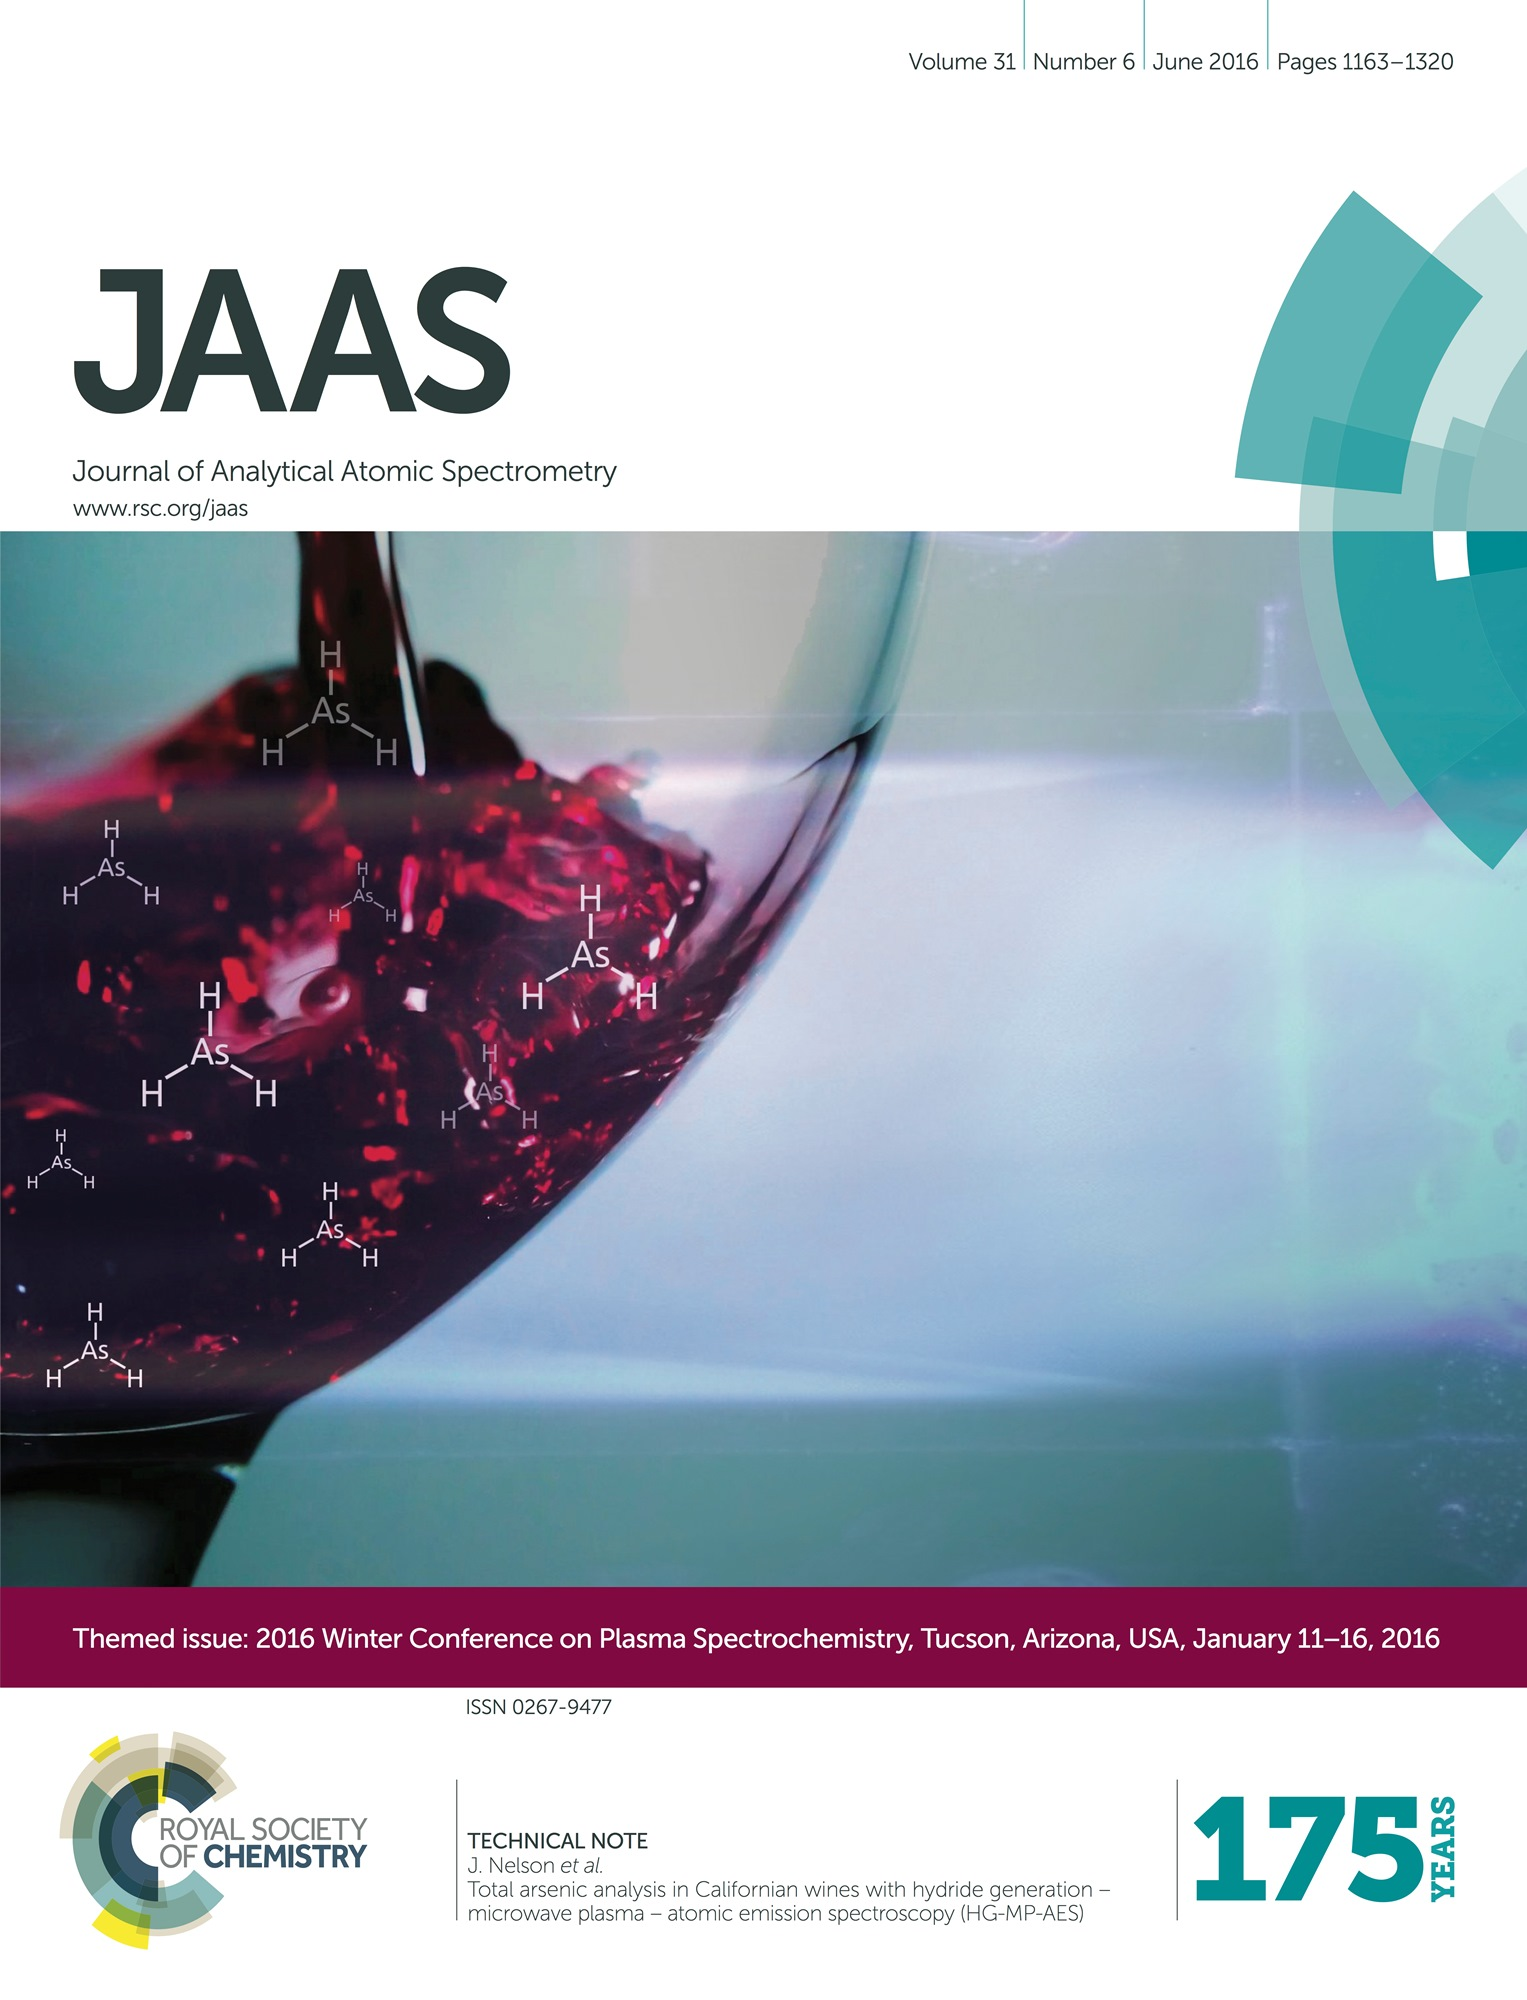 JAAS Tanabe et al 2016 front cover